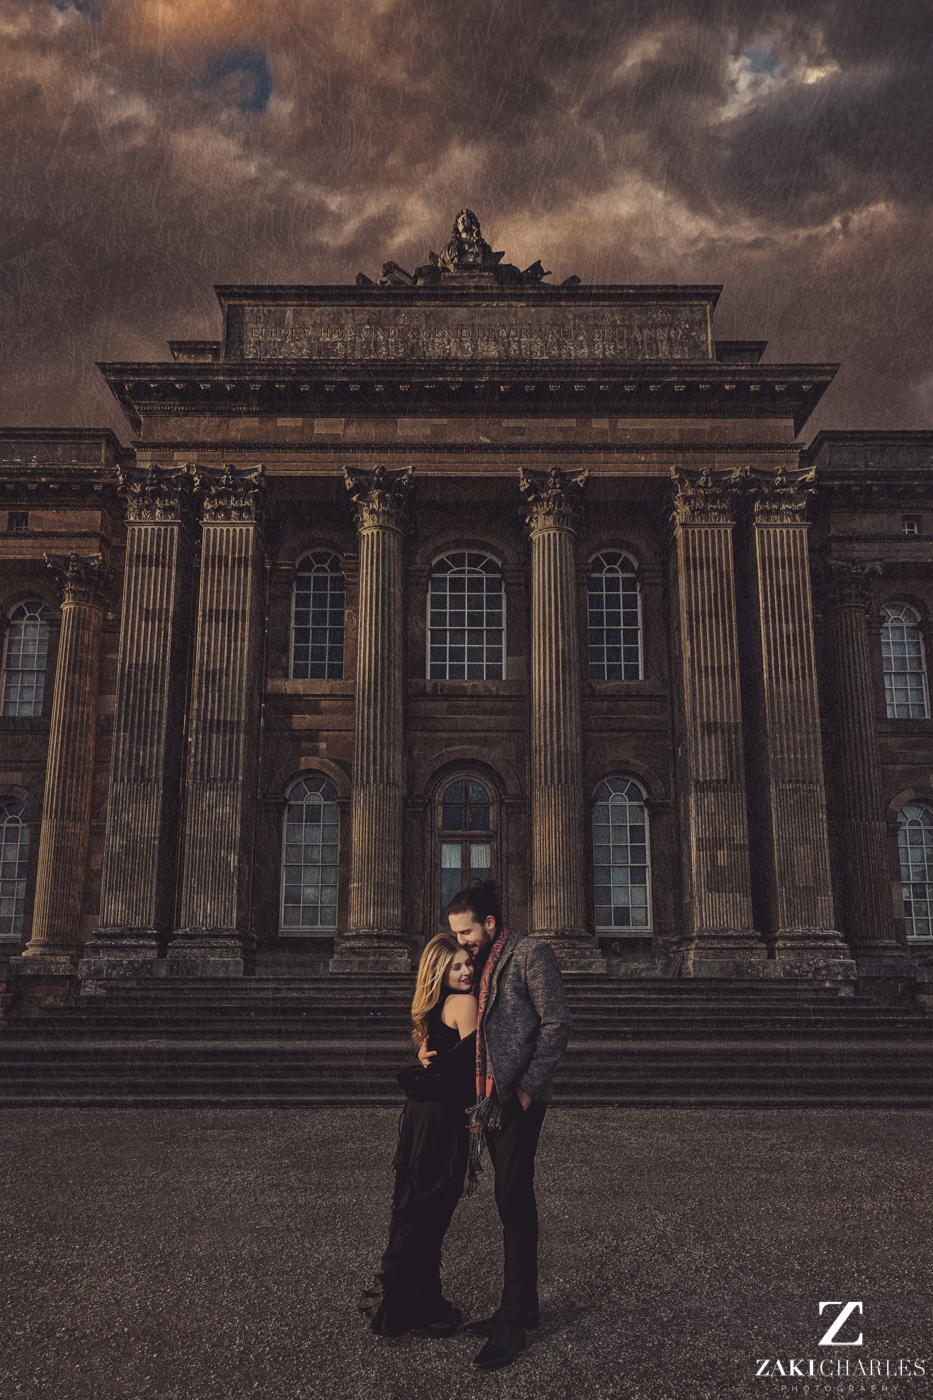 Blenheim Palace Engagement Session, AJ and Yannis fine art photography, Zaki Charles 1